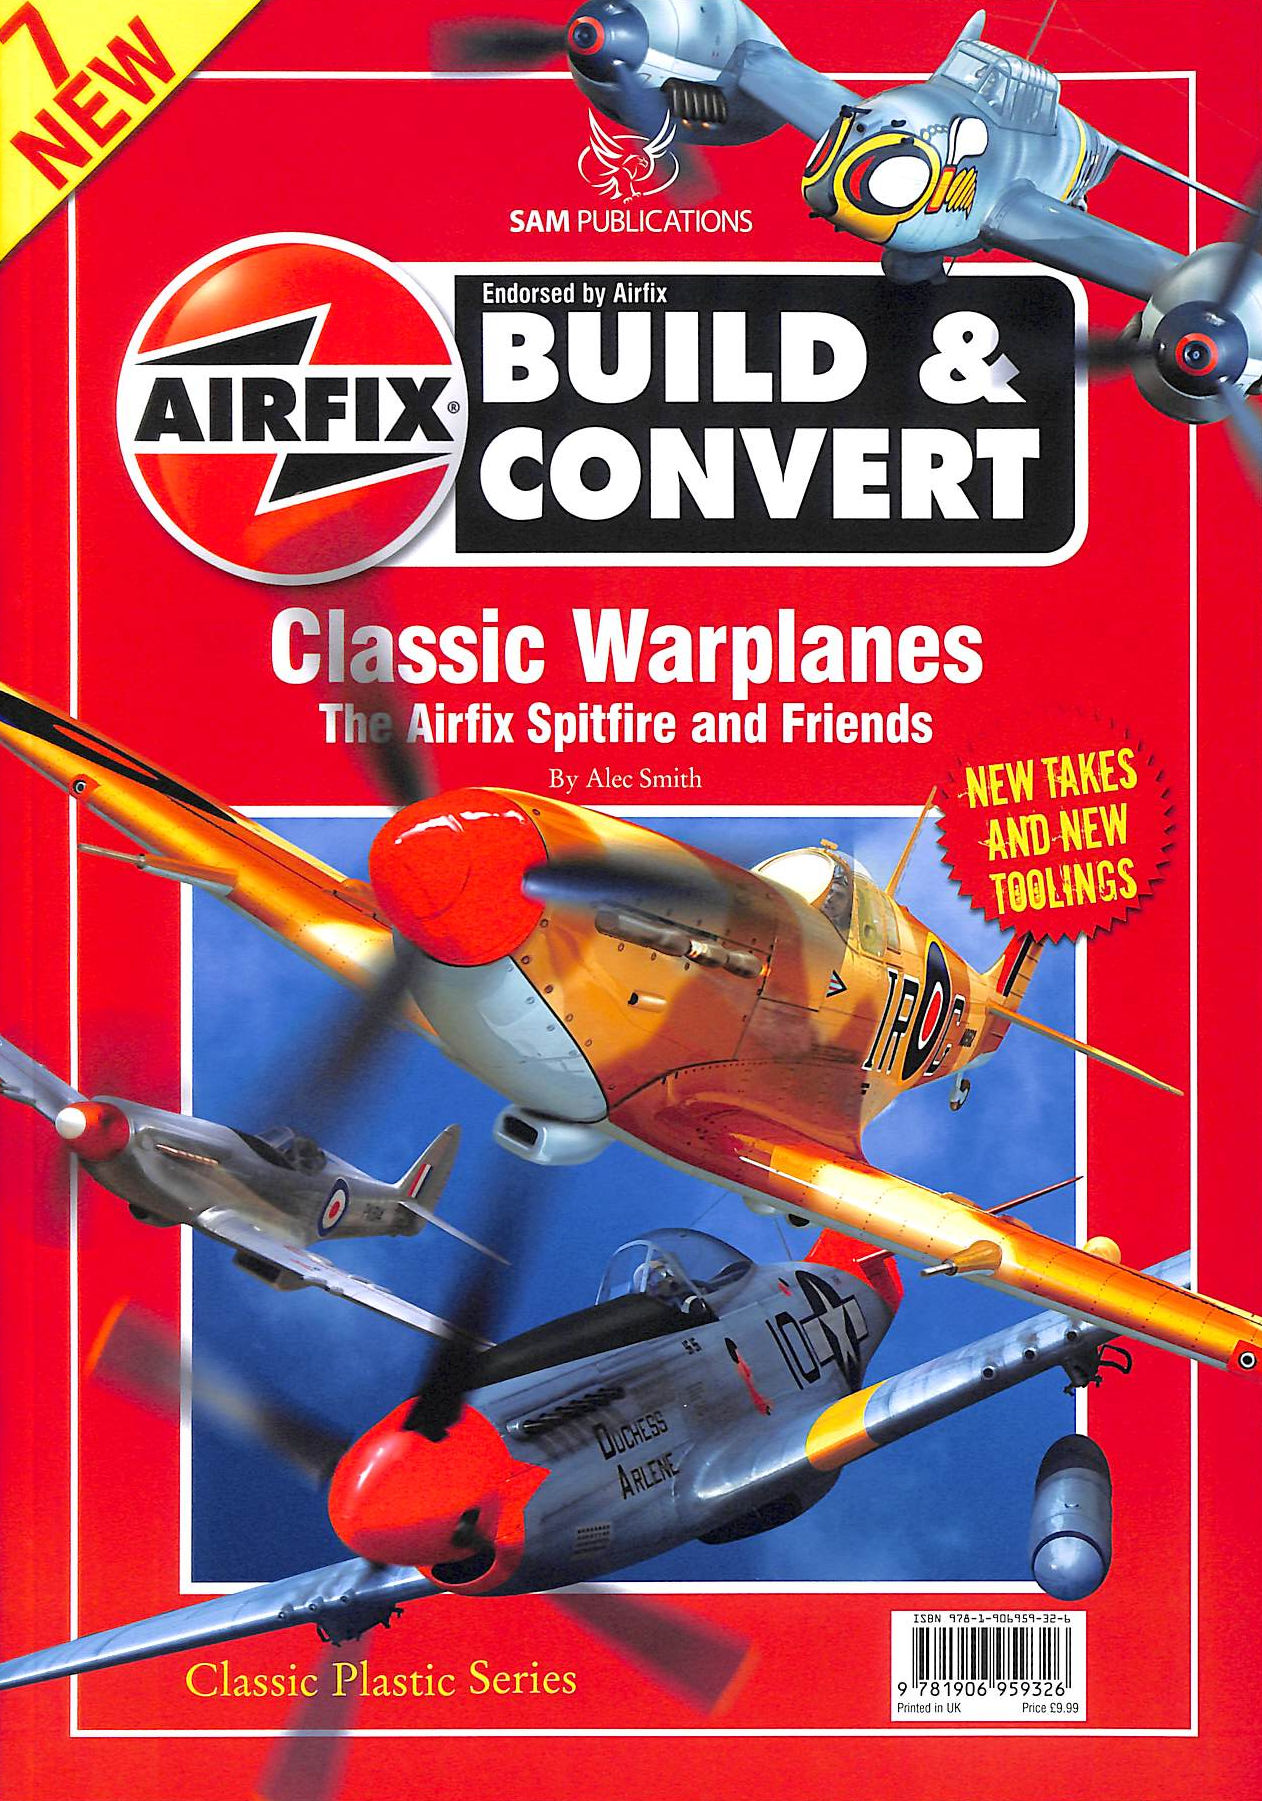 Image for Airfix Build And Convert Classic Warplanes The Airfix Spitfire And Friends